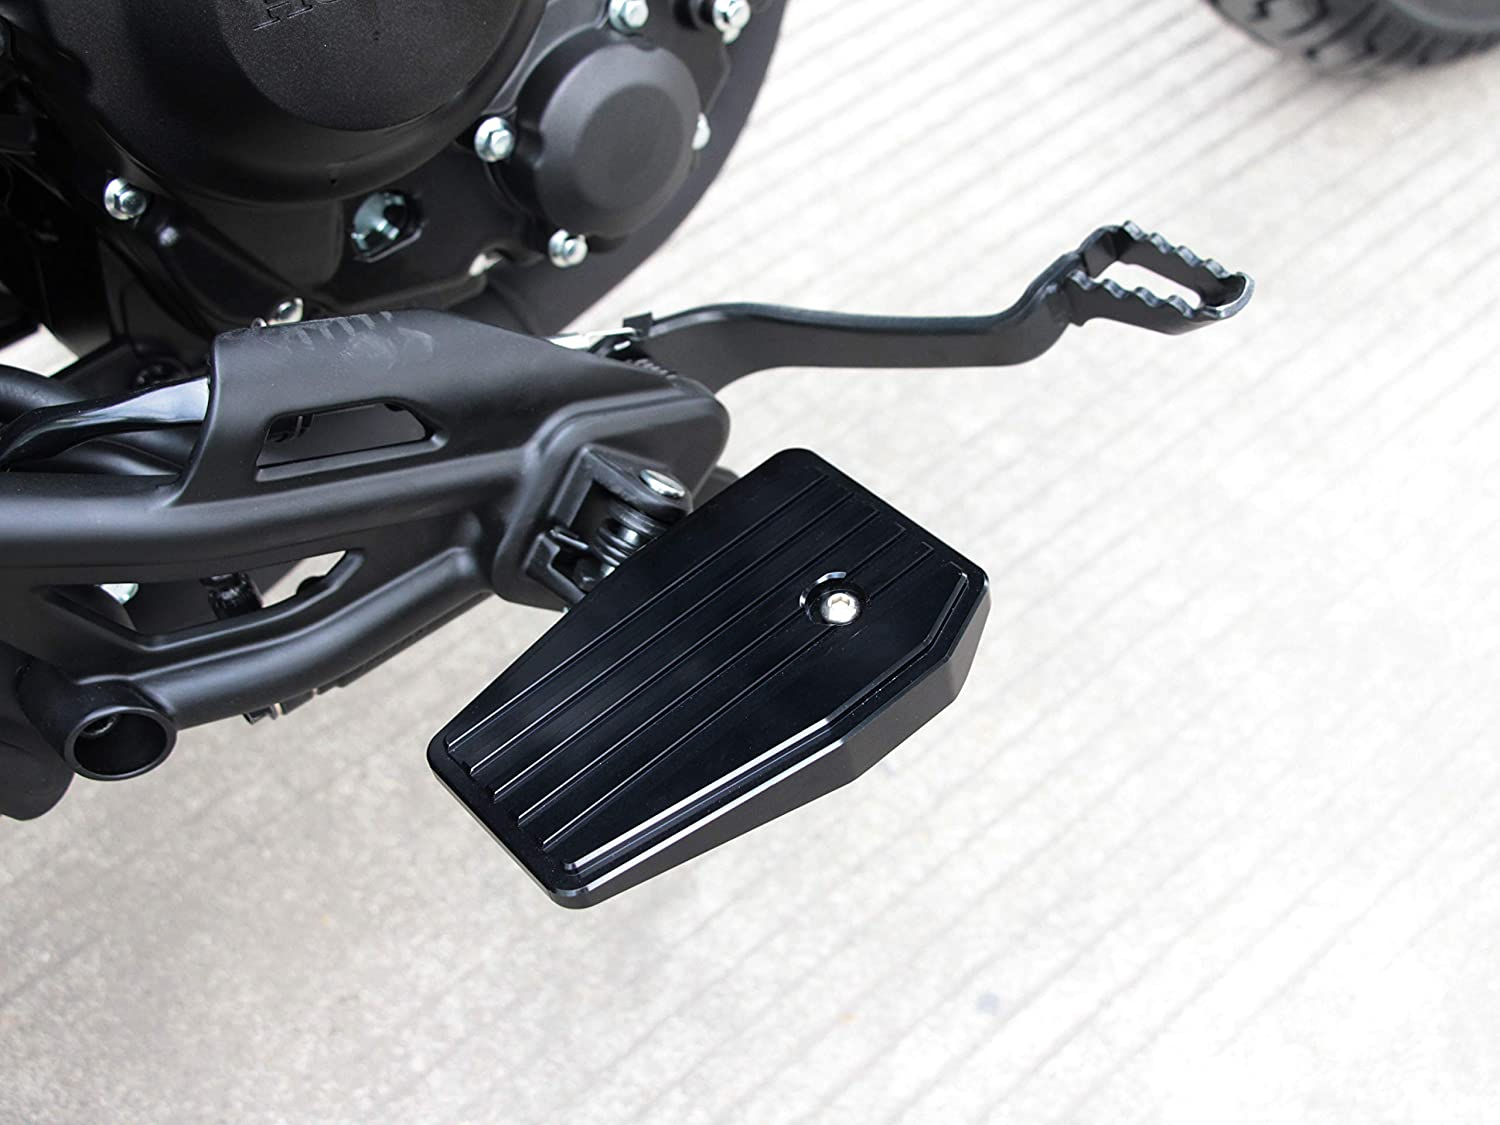 Motorcycle Foot Controls Folding Pegs Footpe Pedal Pad Long Beach Mall Rest Manufacturer regenerated product